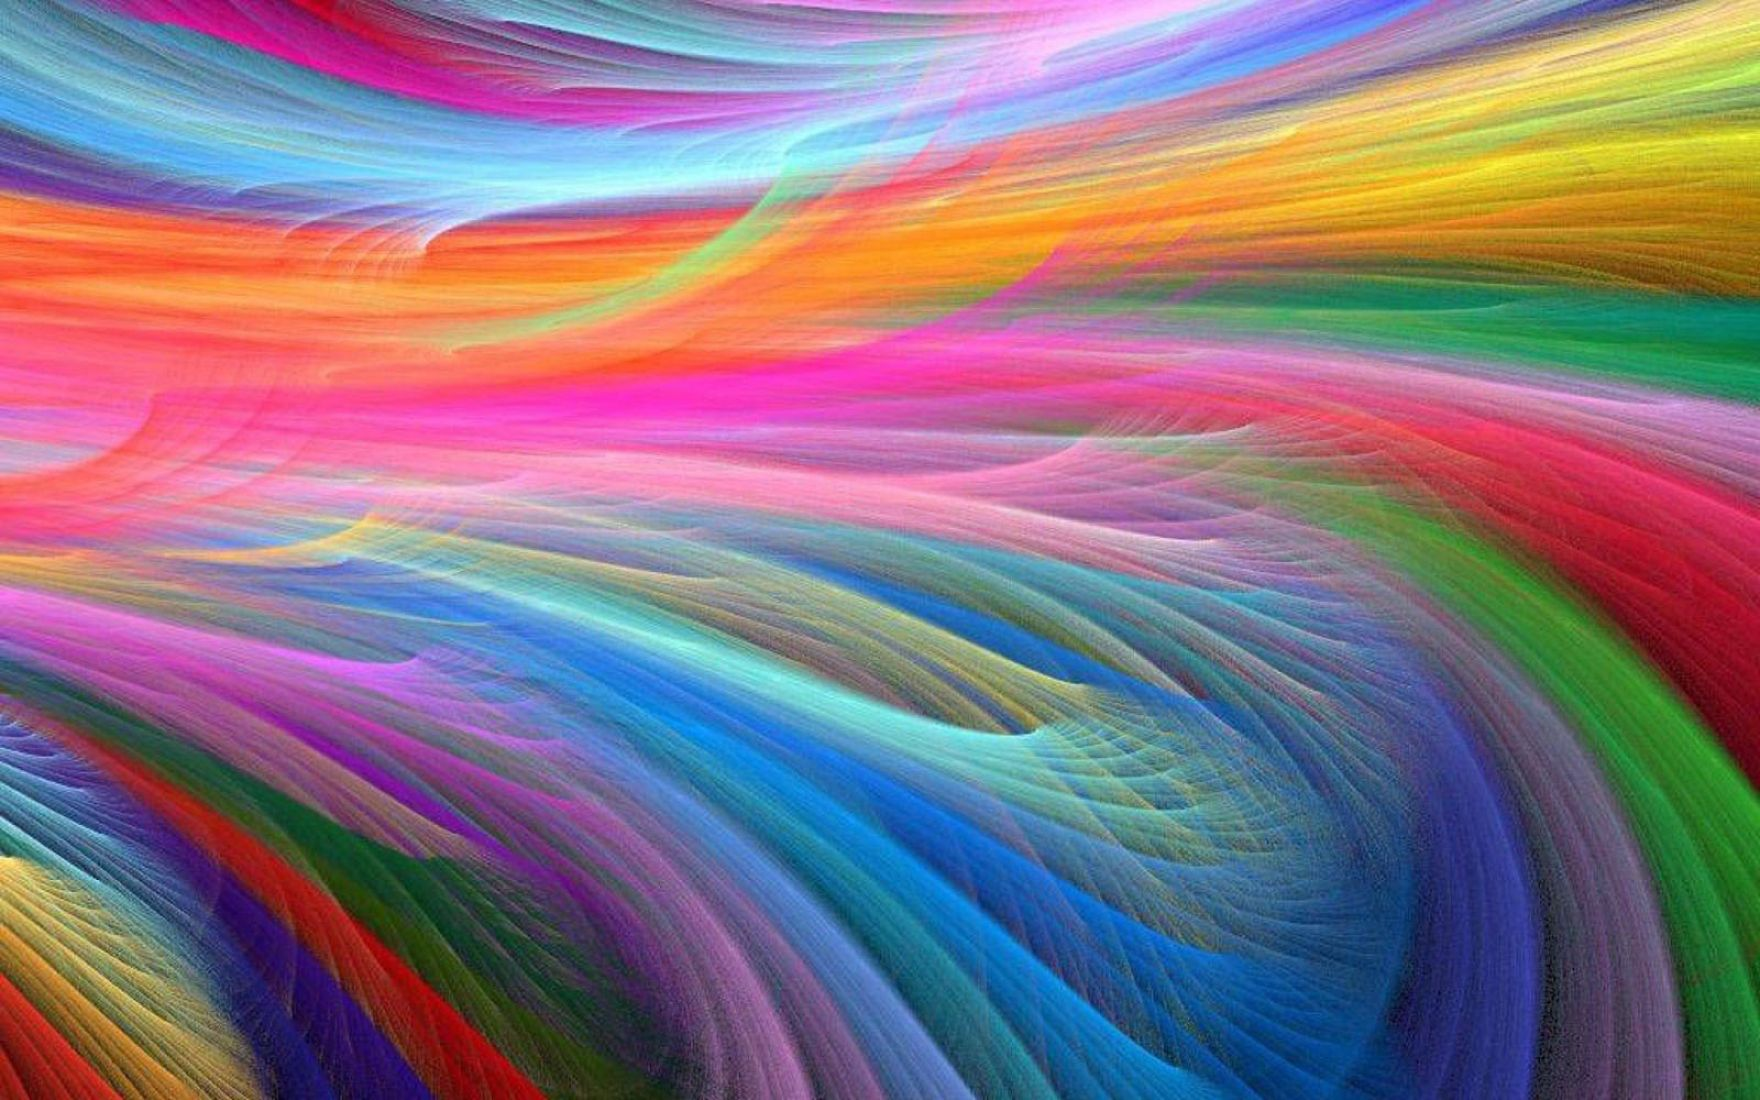 Colorful-Abstract-Art-Desktop-Wallpaper.jpg